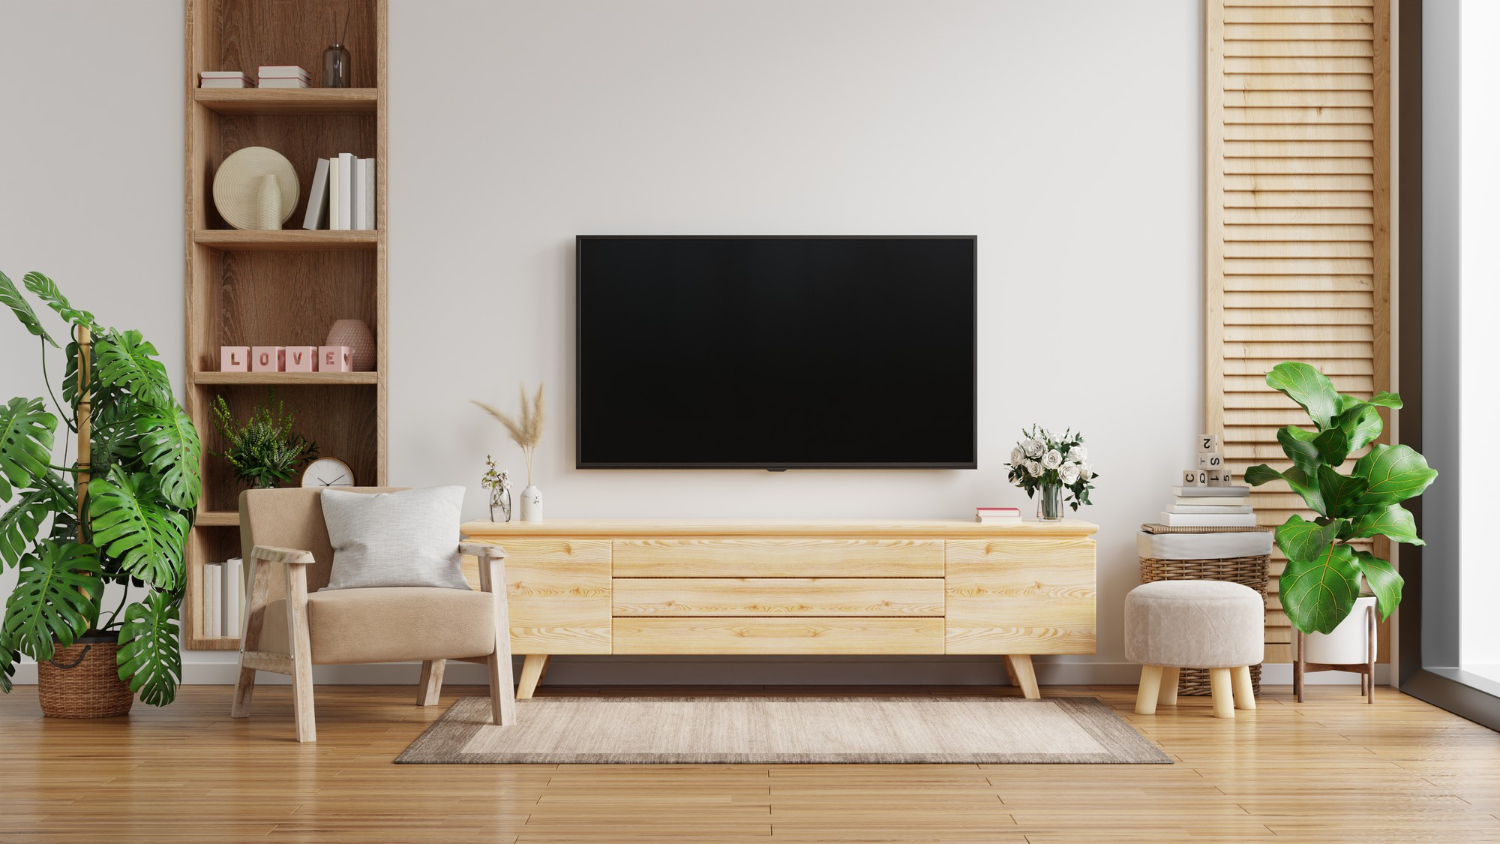 Zen Decoration: 5 tips to achieve harmony and peace in your home